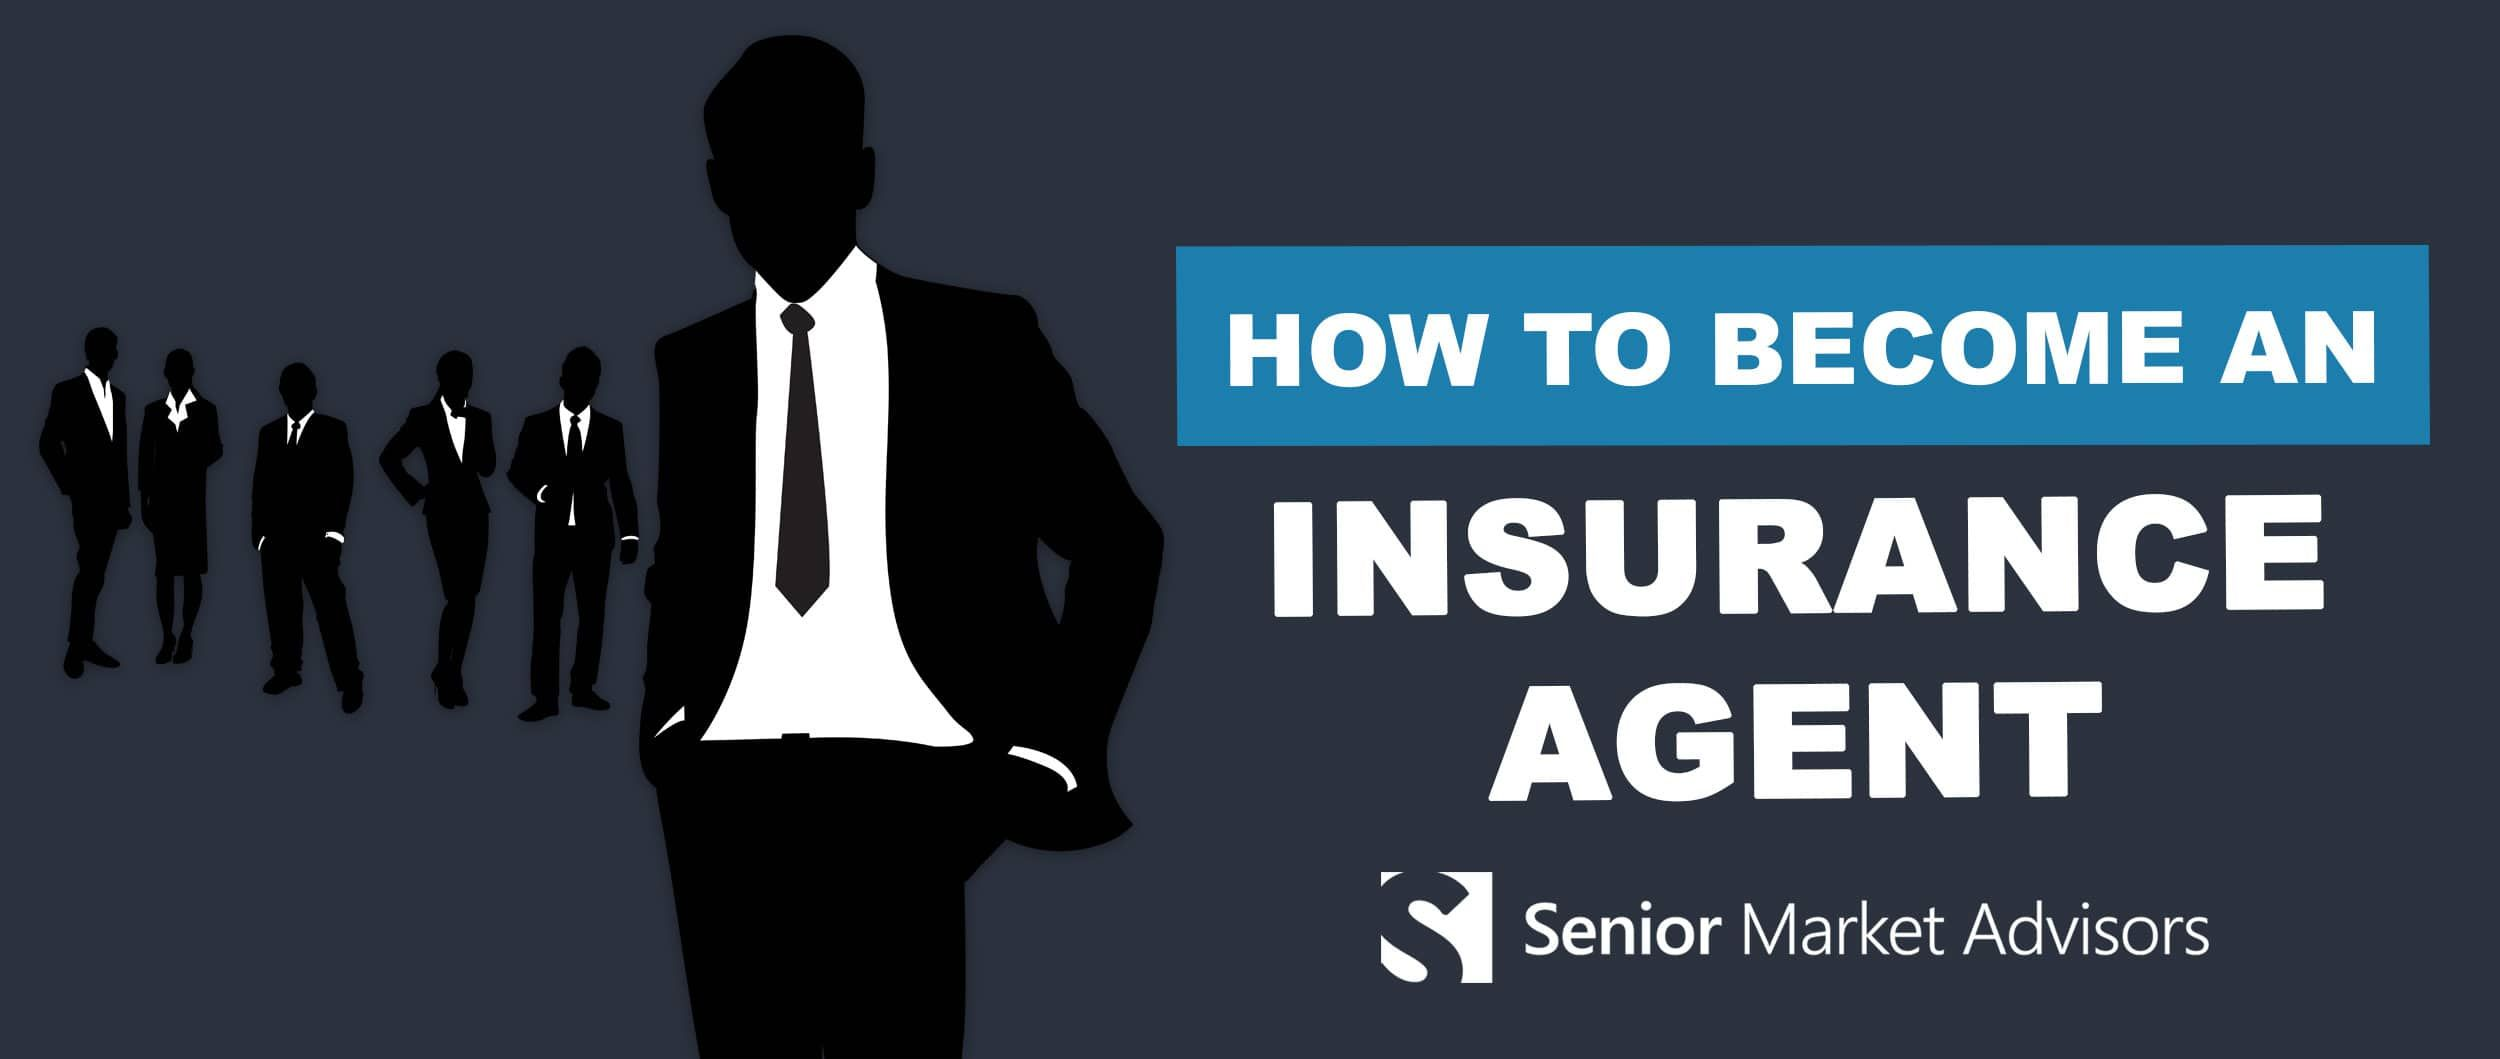 How To Become An Insurance Agent In 3 Steps Insurance Agent How